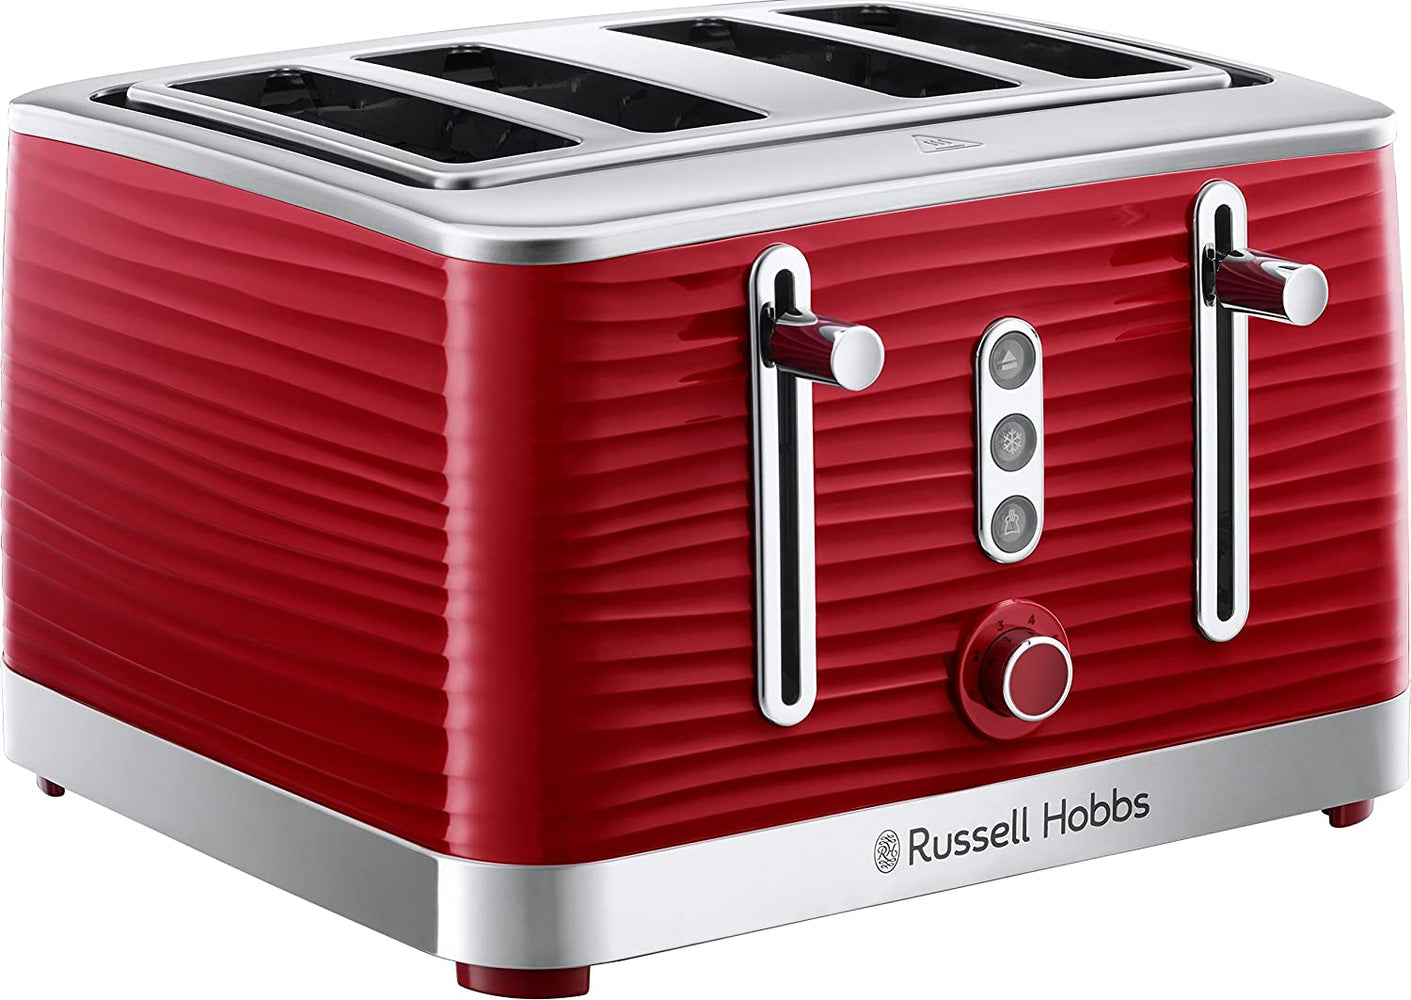 RUSSELL HOBBS Inspire 24382 4-Slice Toaster